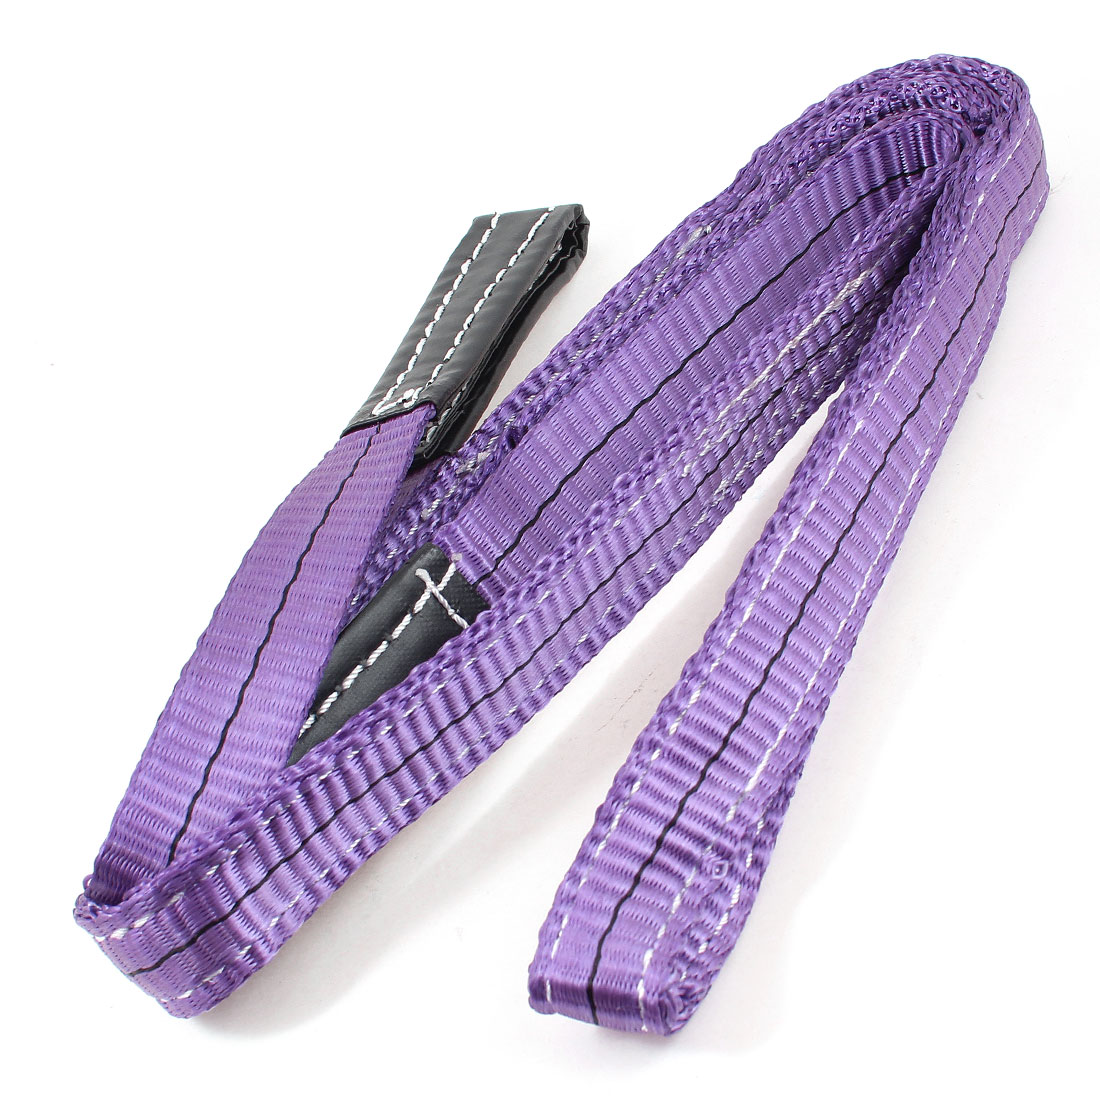 2M 25mm Width Eye to Eye Nylon Web Lifting Strap Tow Strap Purple